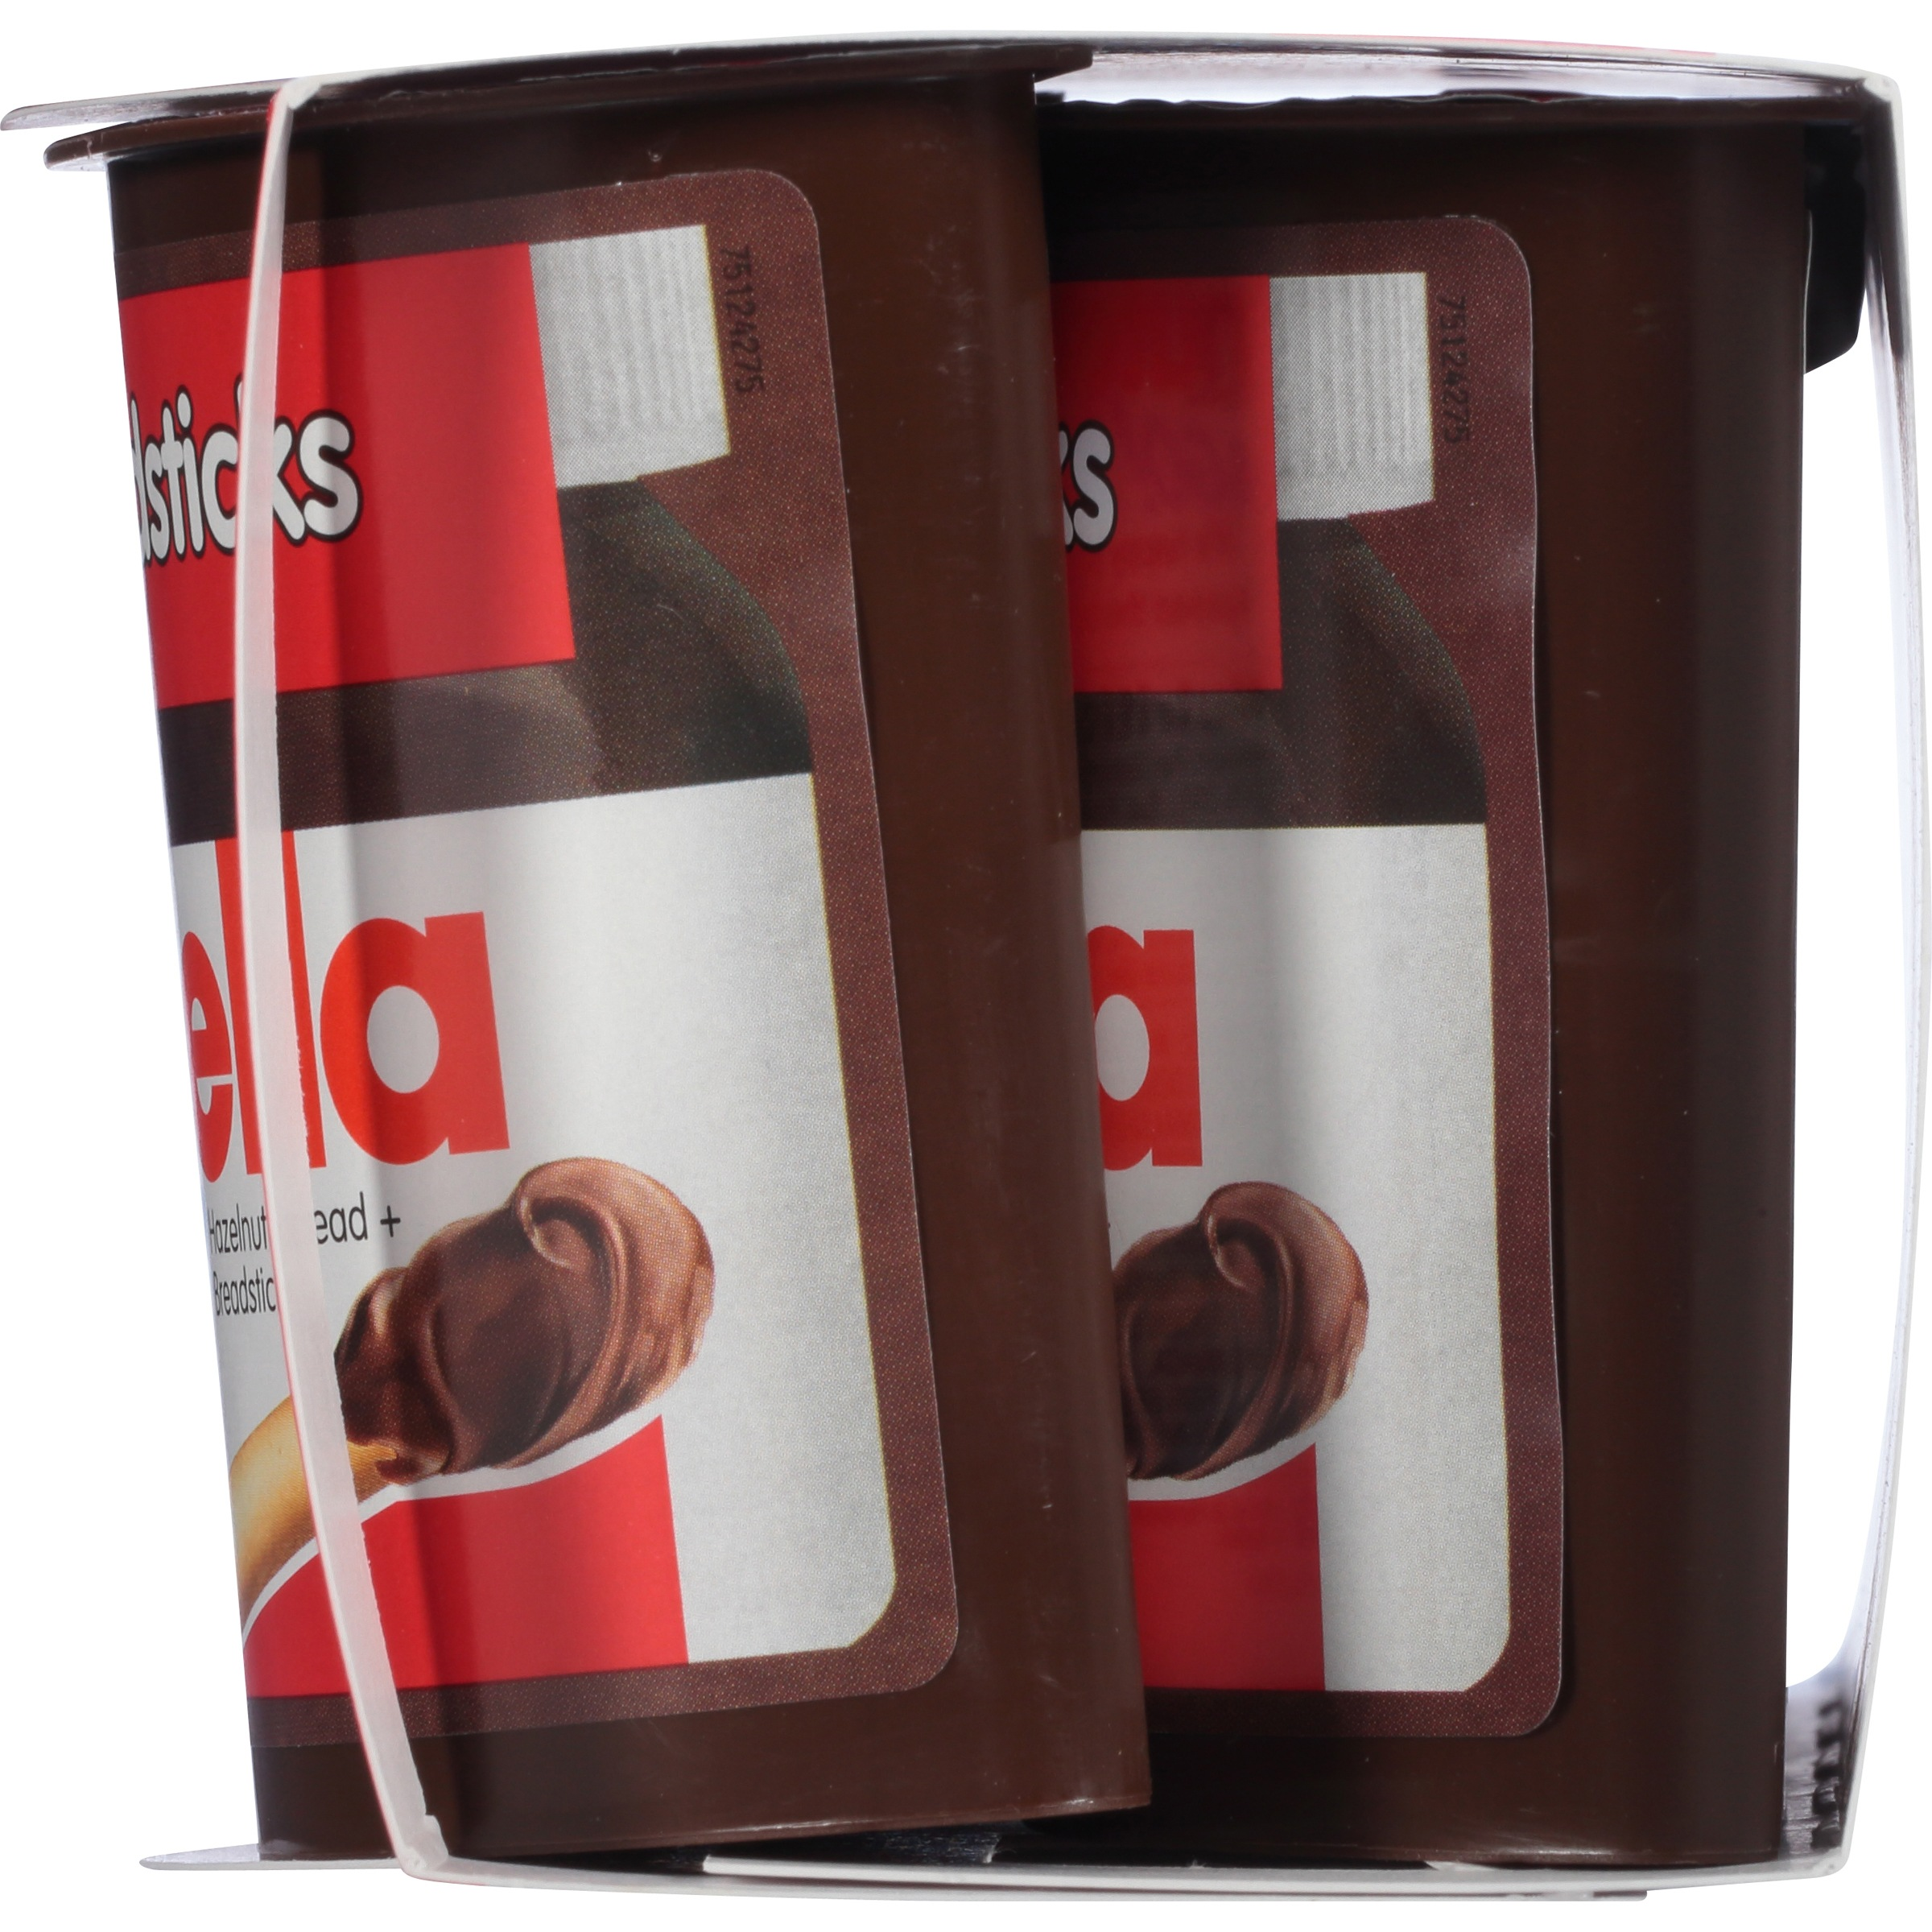 Nutella Go Hazelnut Spread With Breadsticks 4 18 Oz Packs Box Of 12